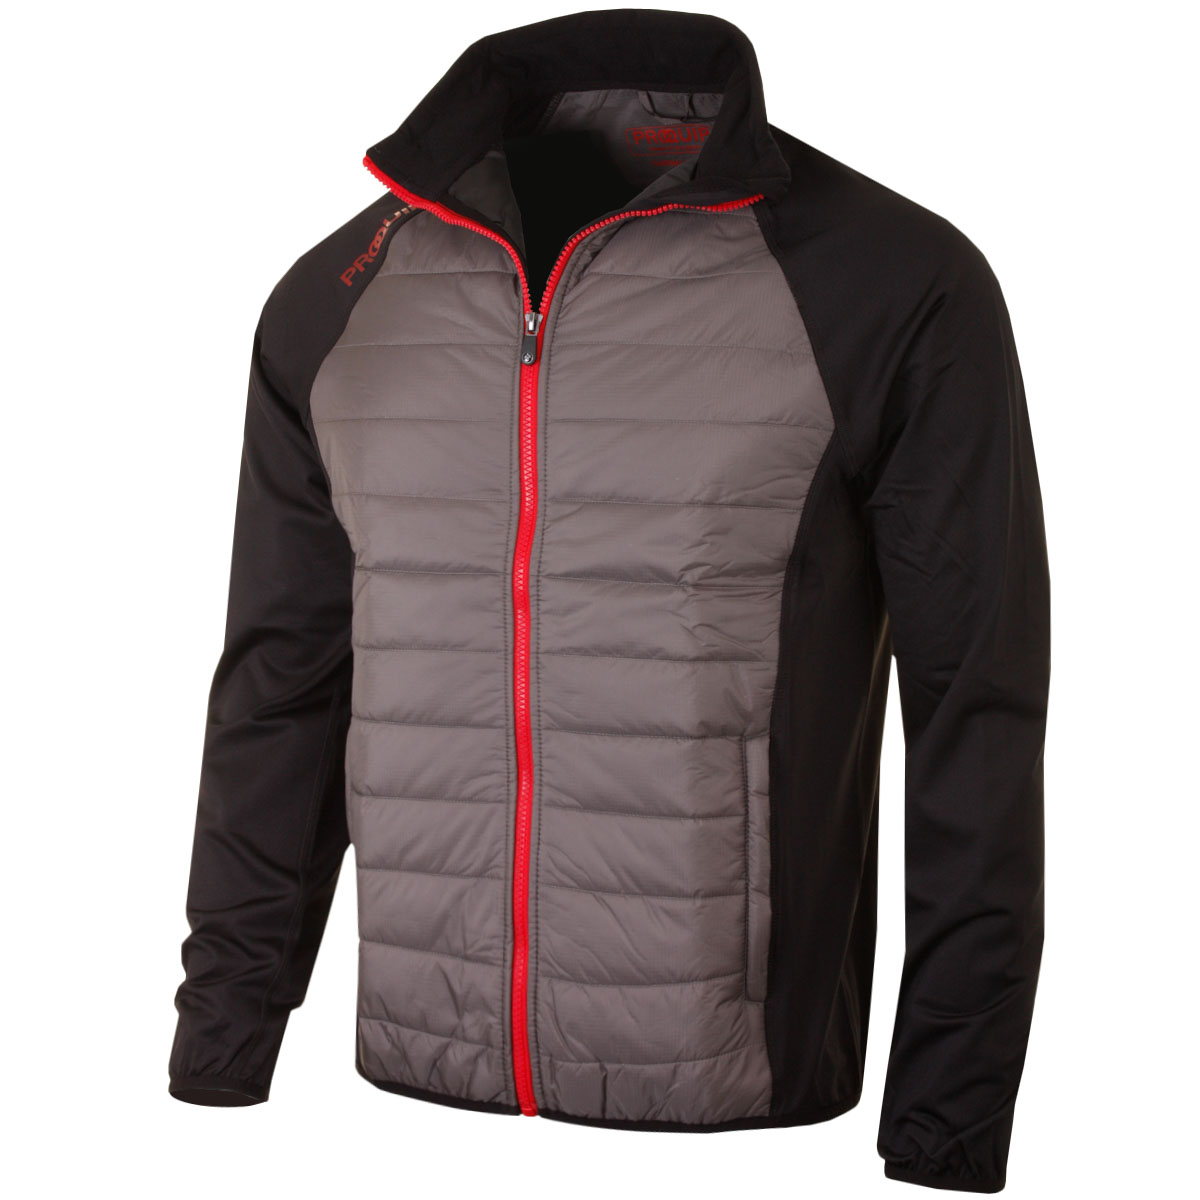 Find great deals on eBay for Windproof Jacket in Men's Coats And Jackets. Shop with confidence.